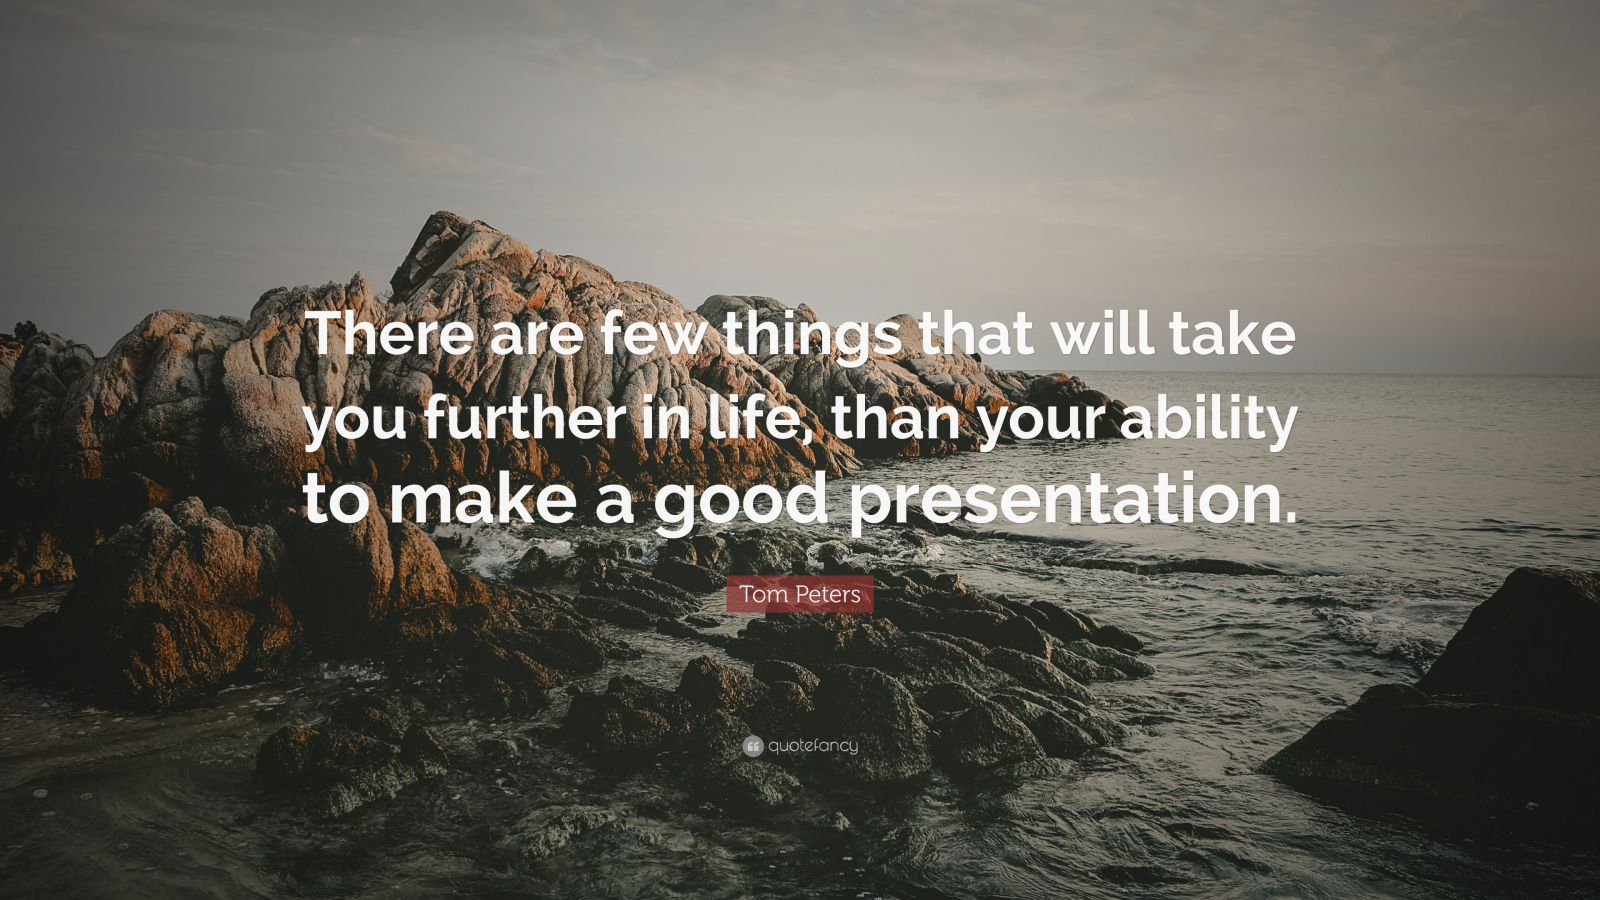 """Tom Peters Quote: """"There are few things that will take you further in life, than your ability to make a good presentation."""""""